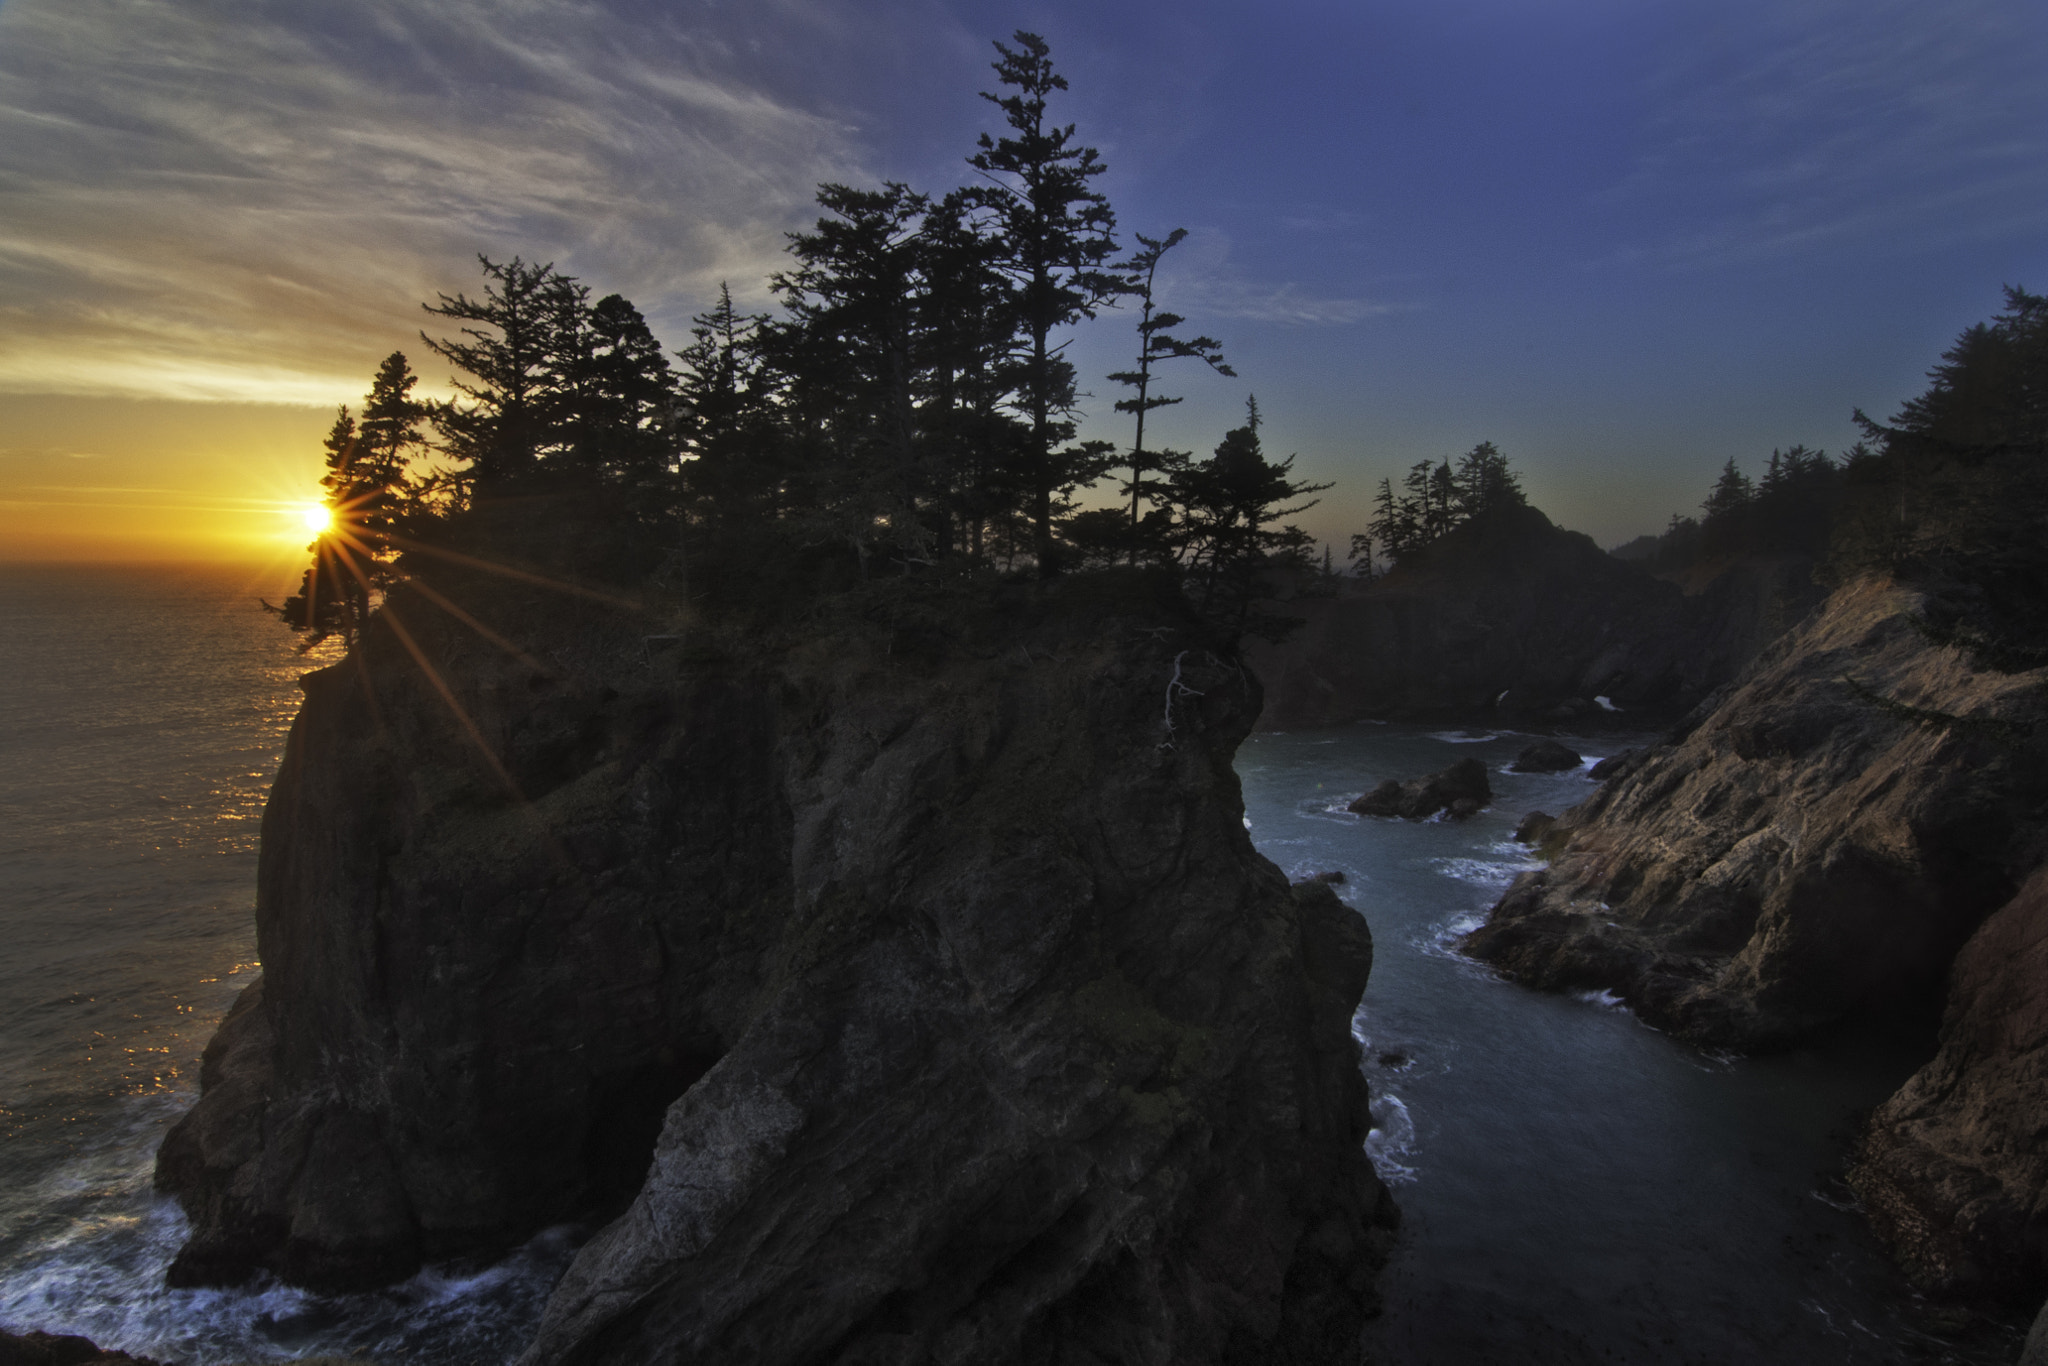 Photograph The Rugged Oregon Coast by Andrew Curtis on 500px